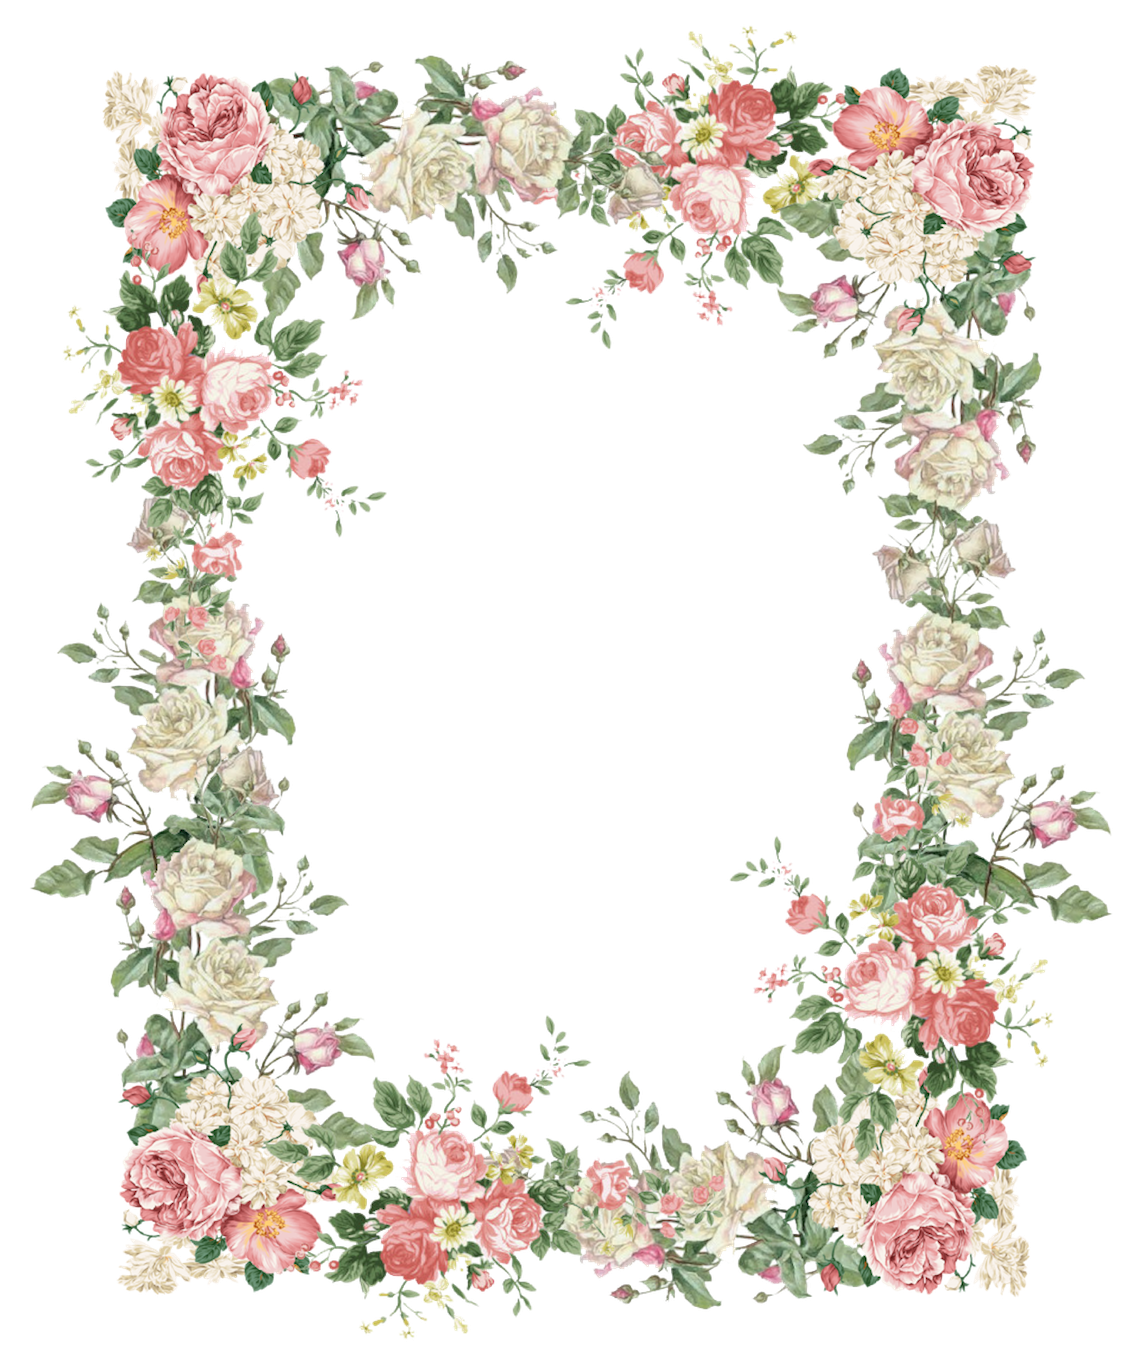 Frames Floral Em Png: Pin By Purva Jogdeo On Tea Parties